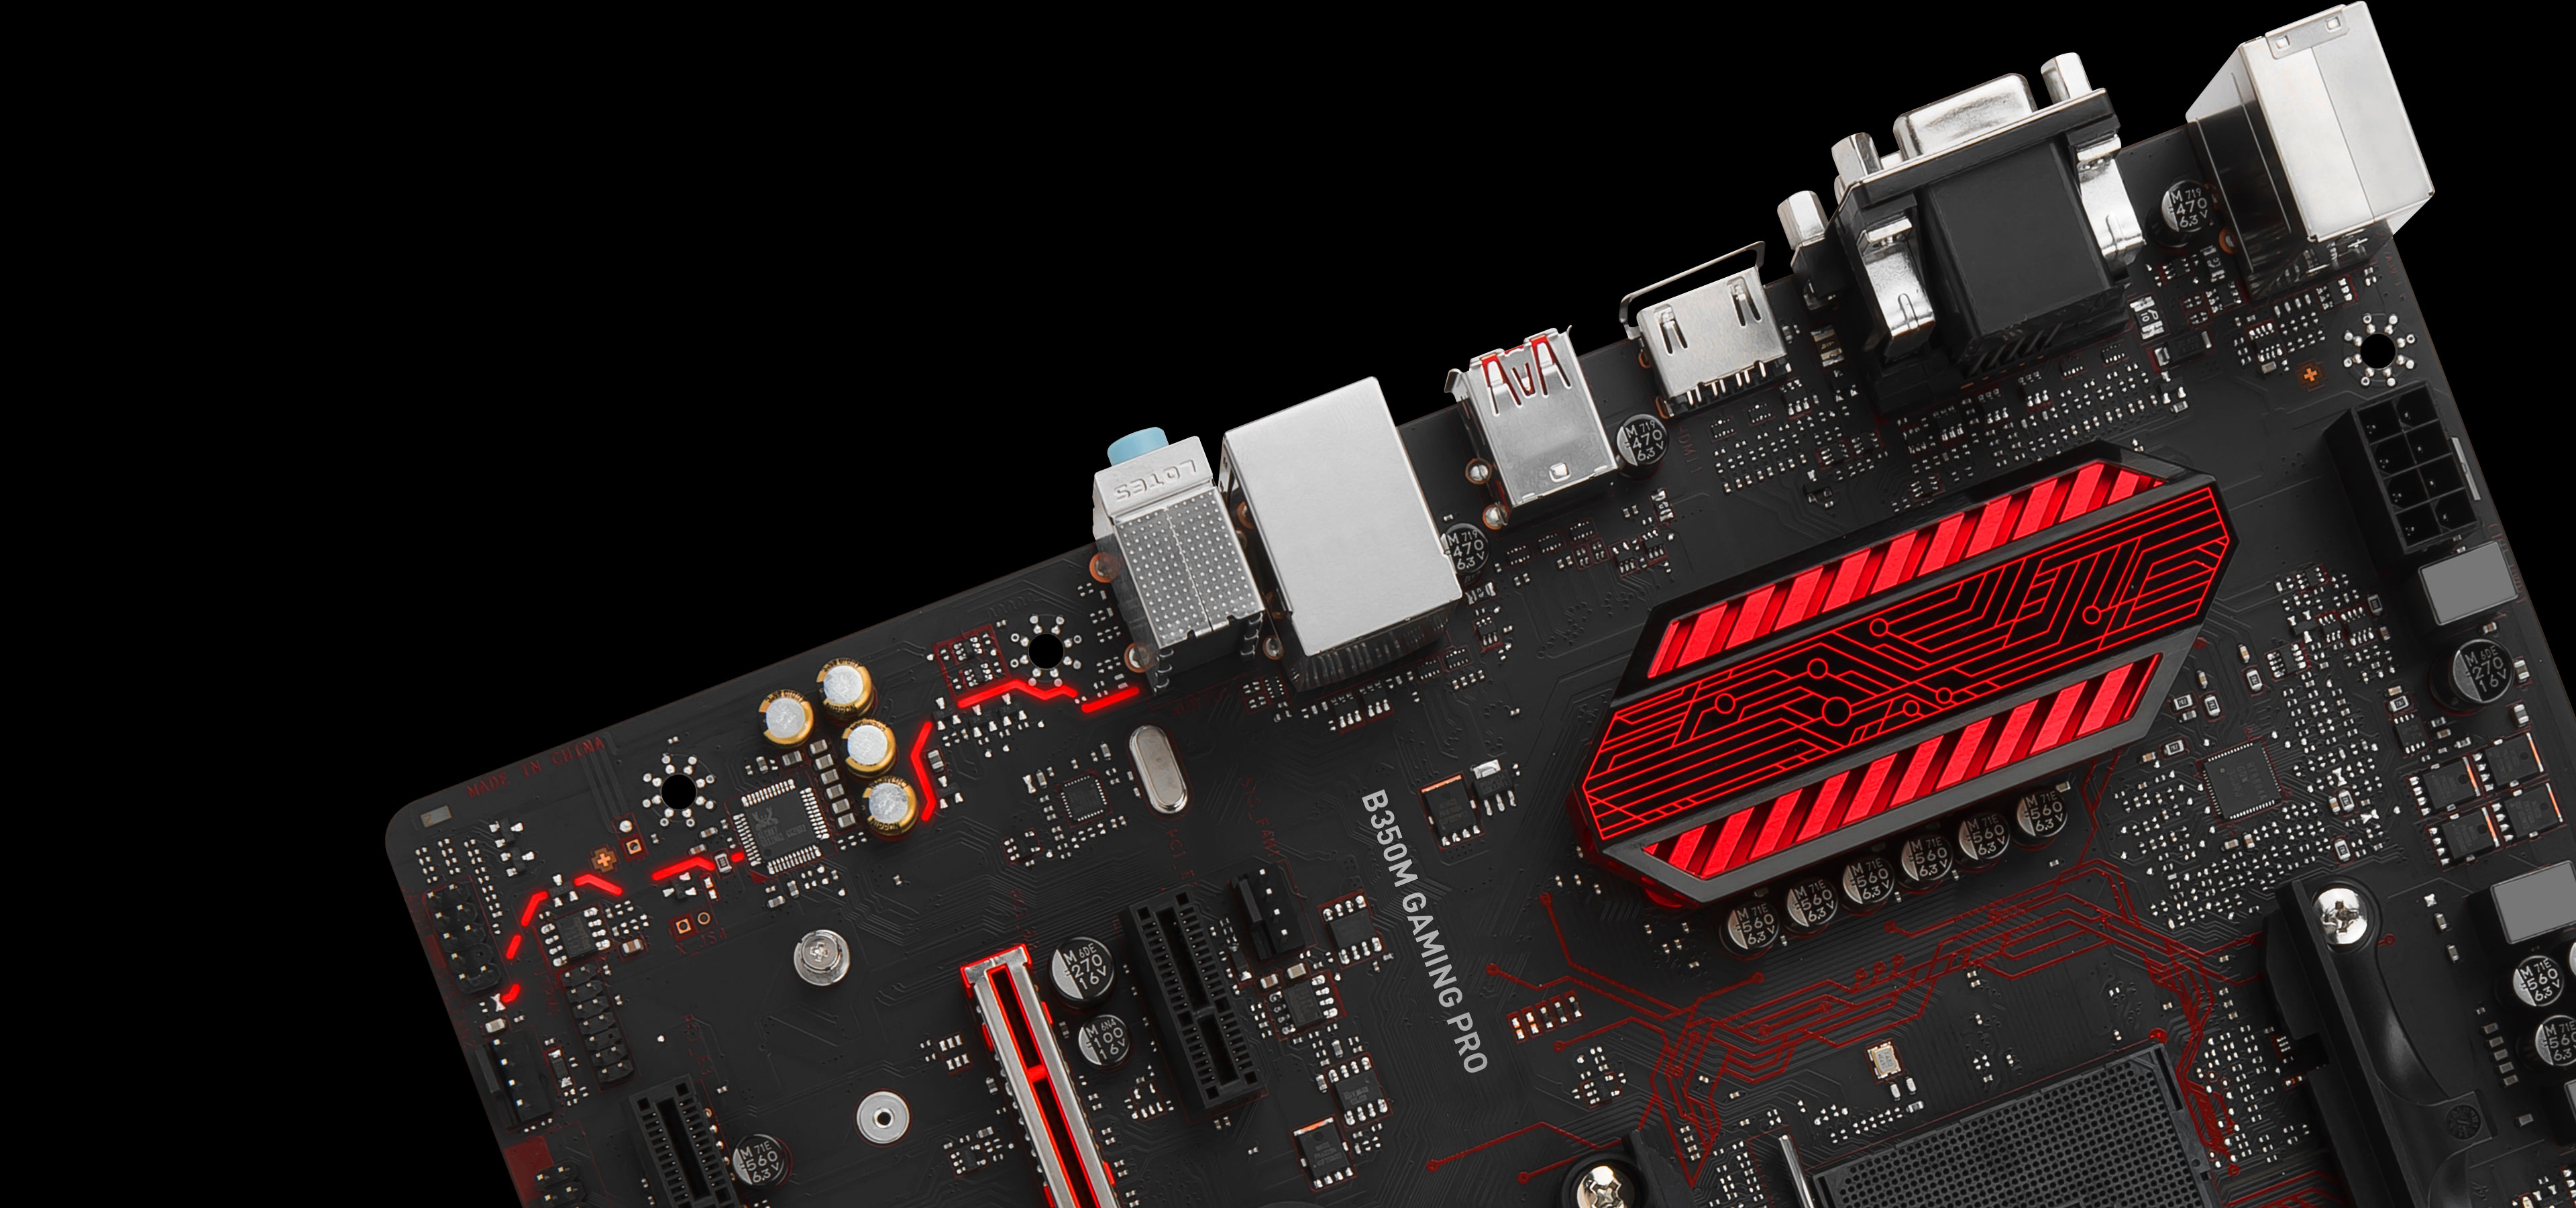 B350M GAMING PRO | Motherboard - The world leader in